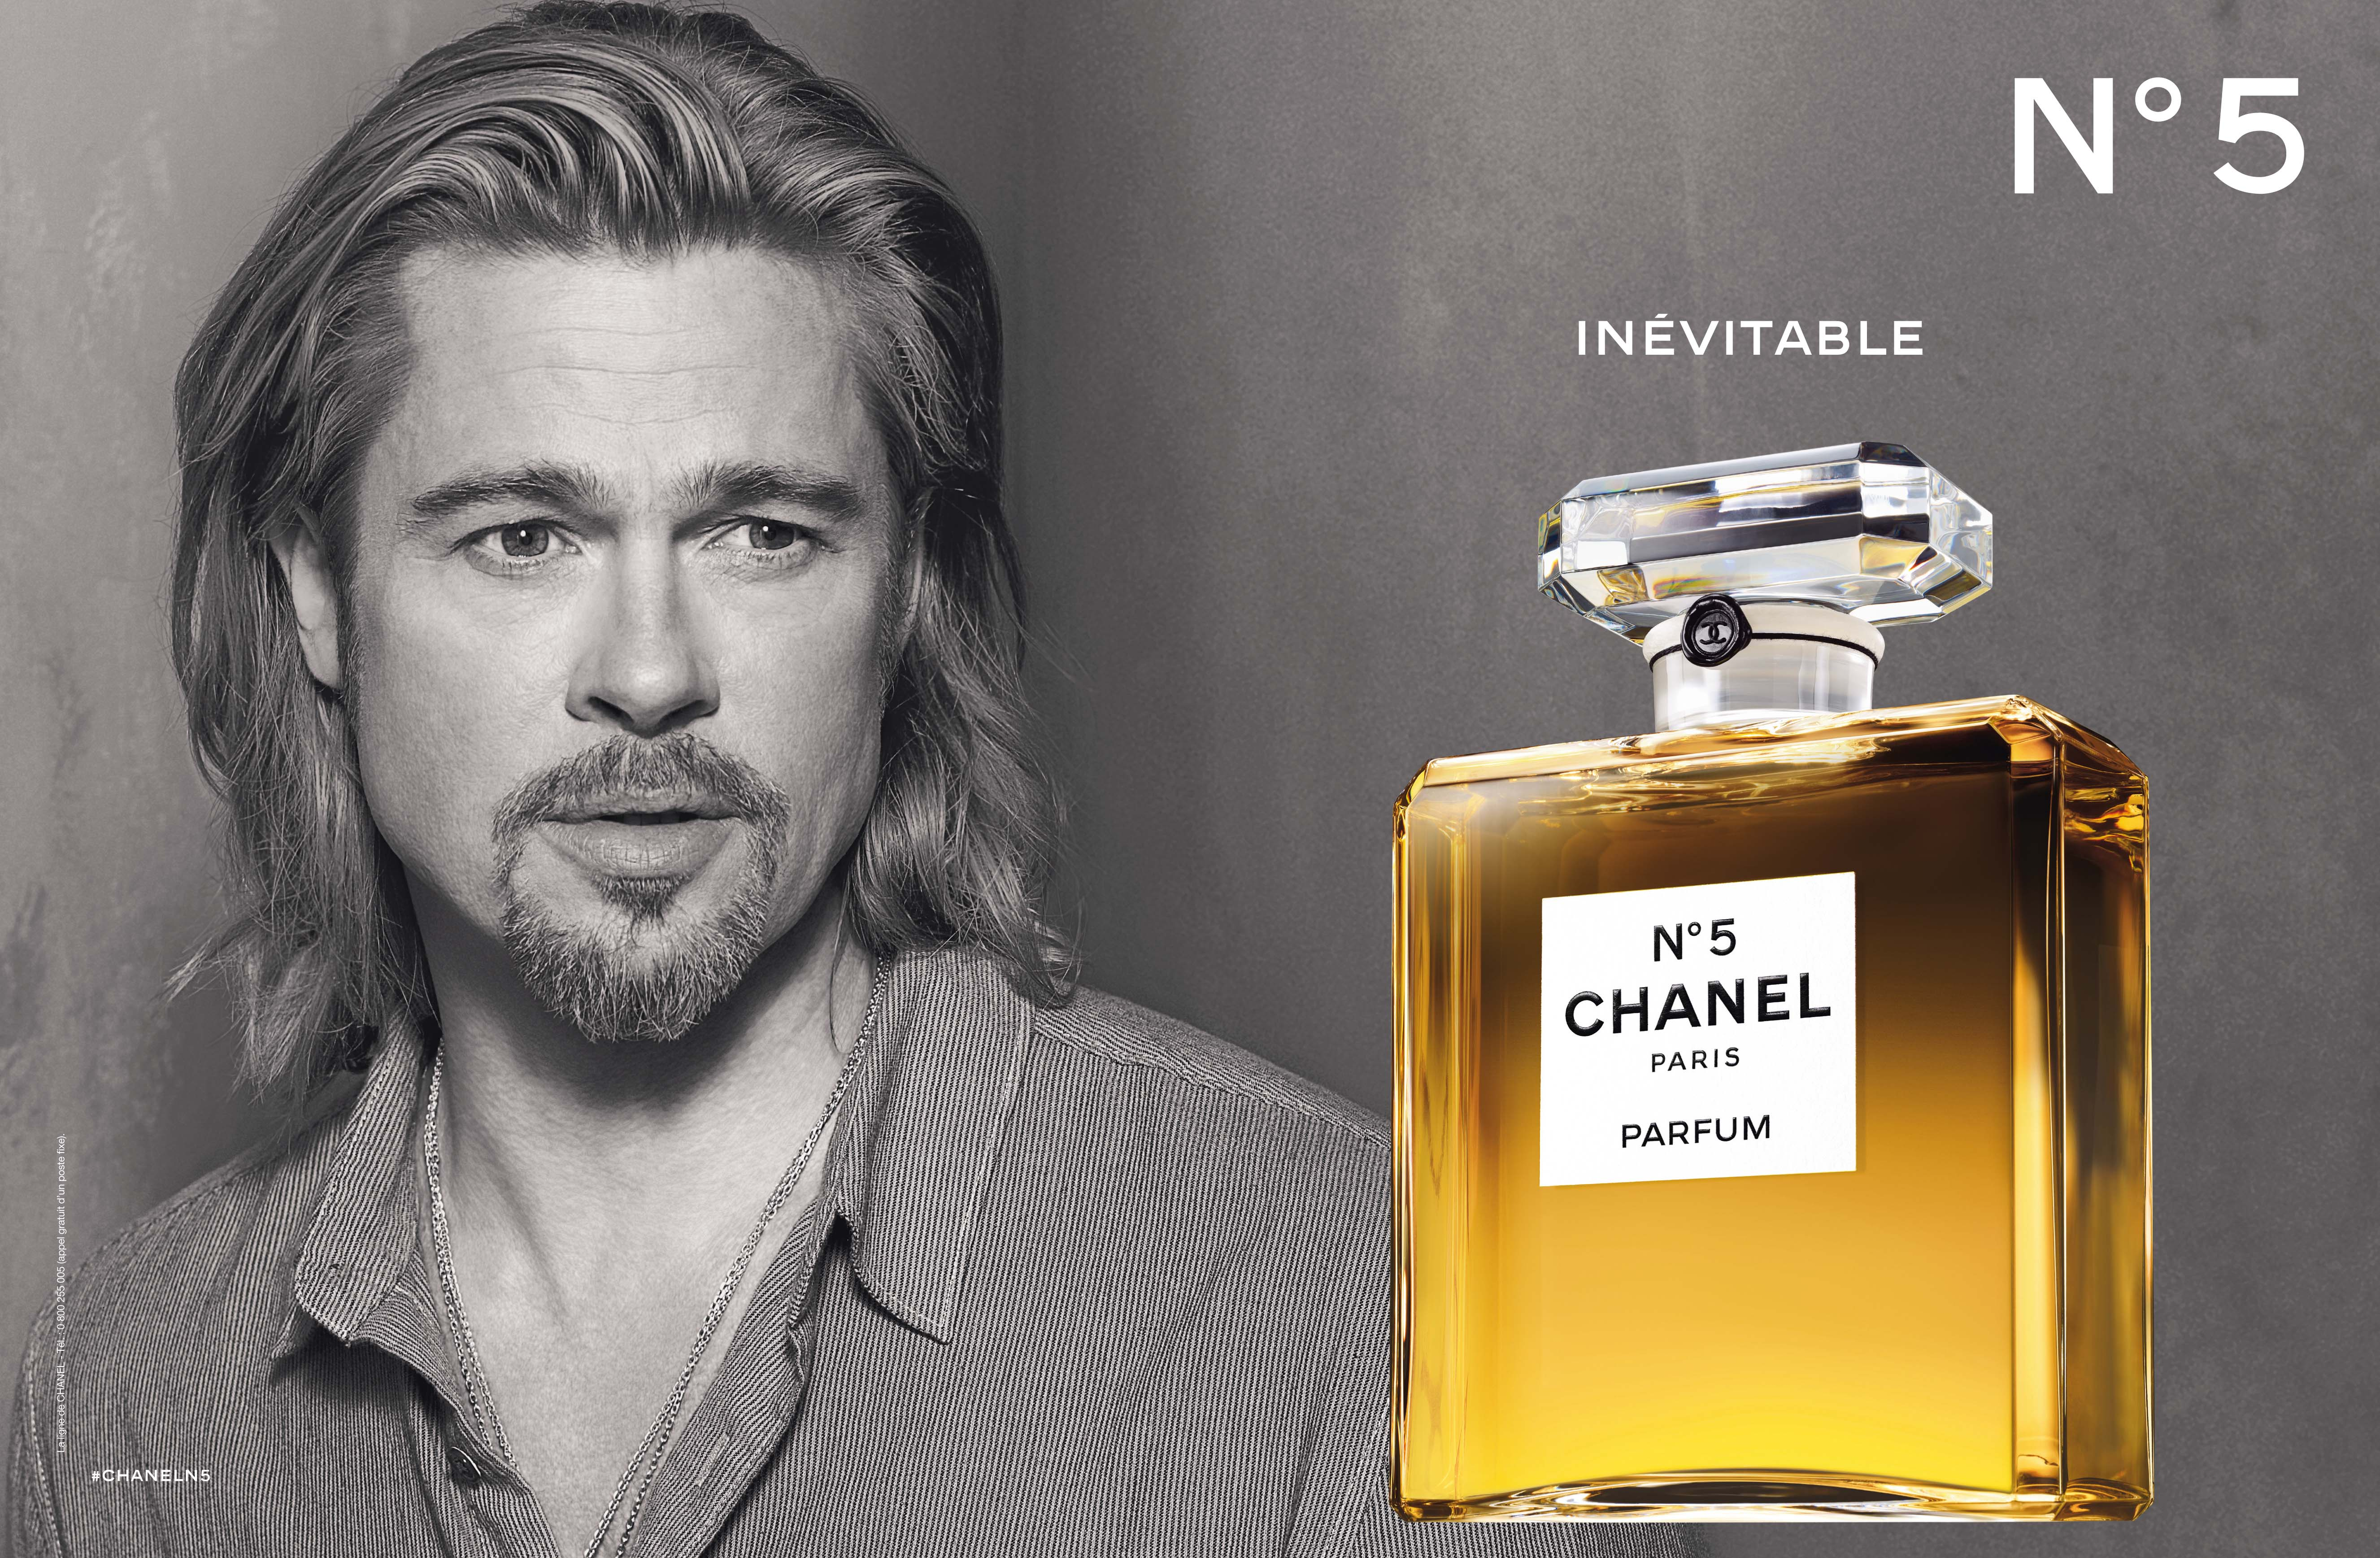 Chanel Parfum Chanel N5 There You Are Inévitable Avec Brad